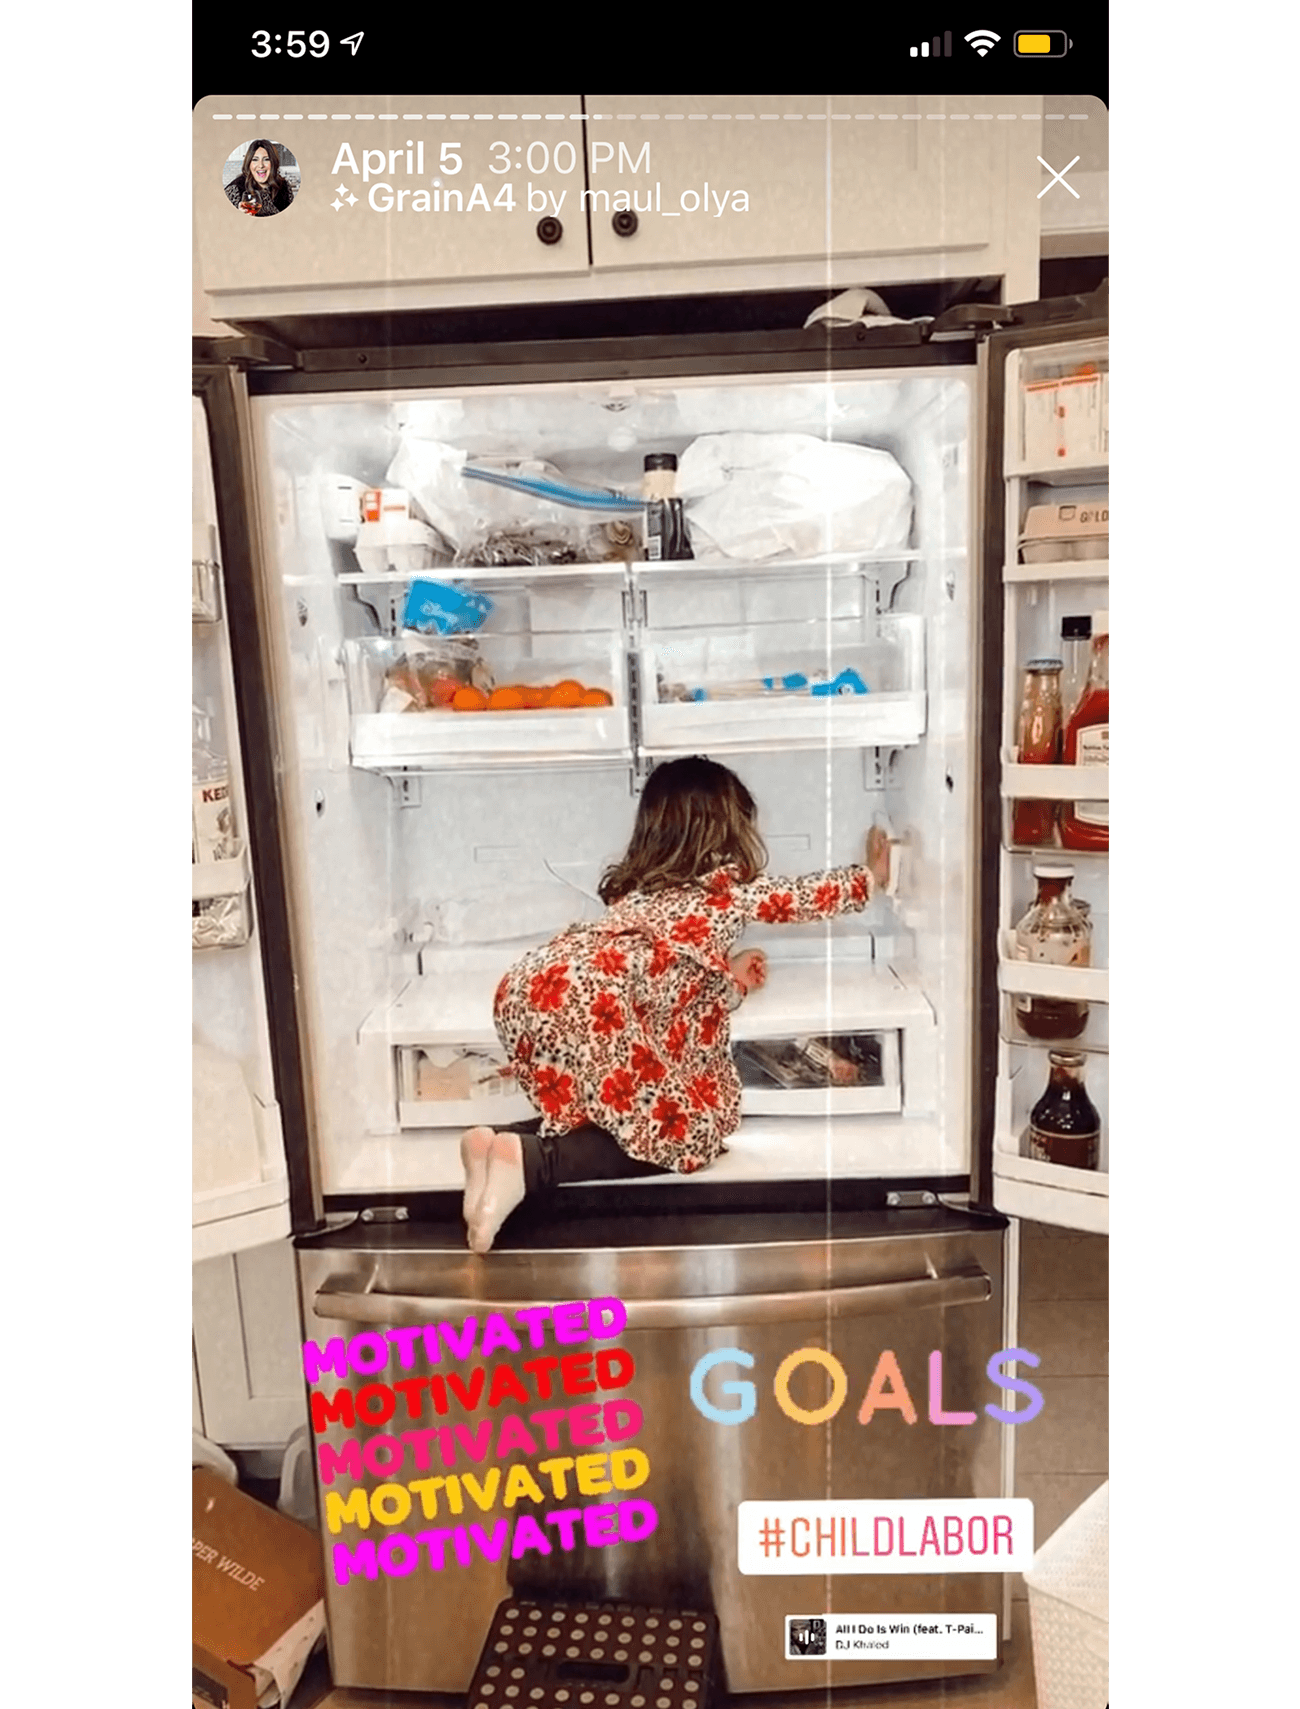 A little girl is kneeling inside the fridge while cleaning the shelves.